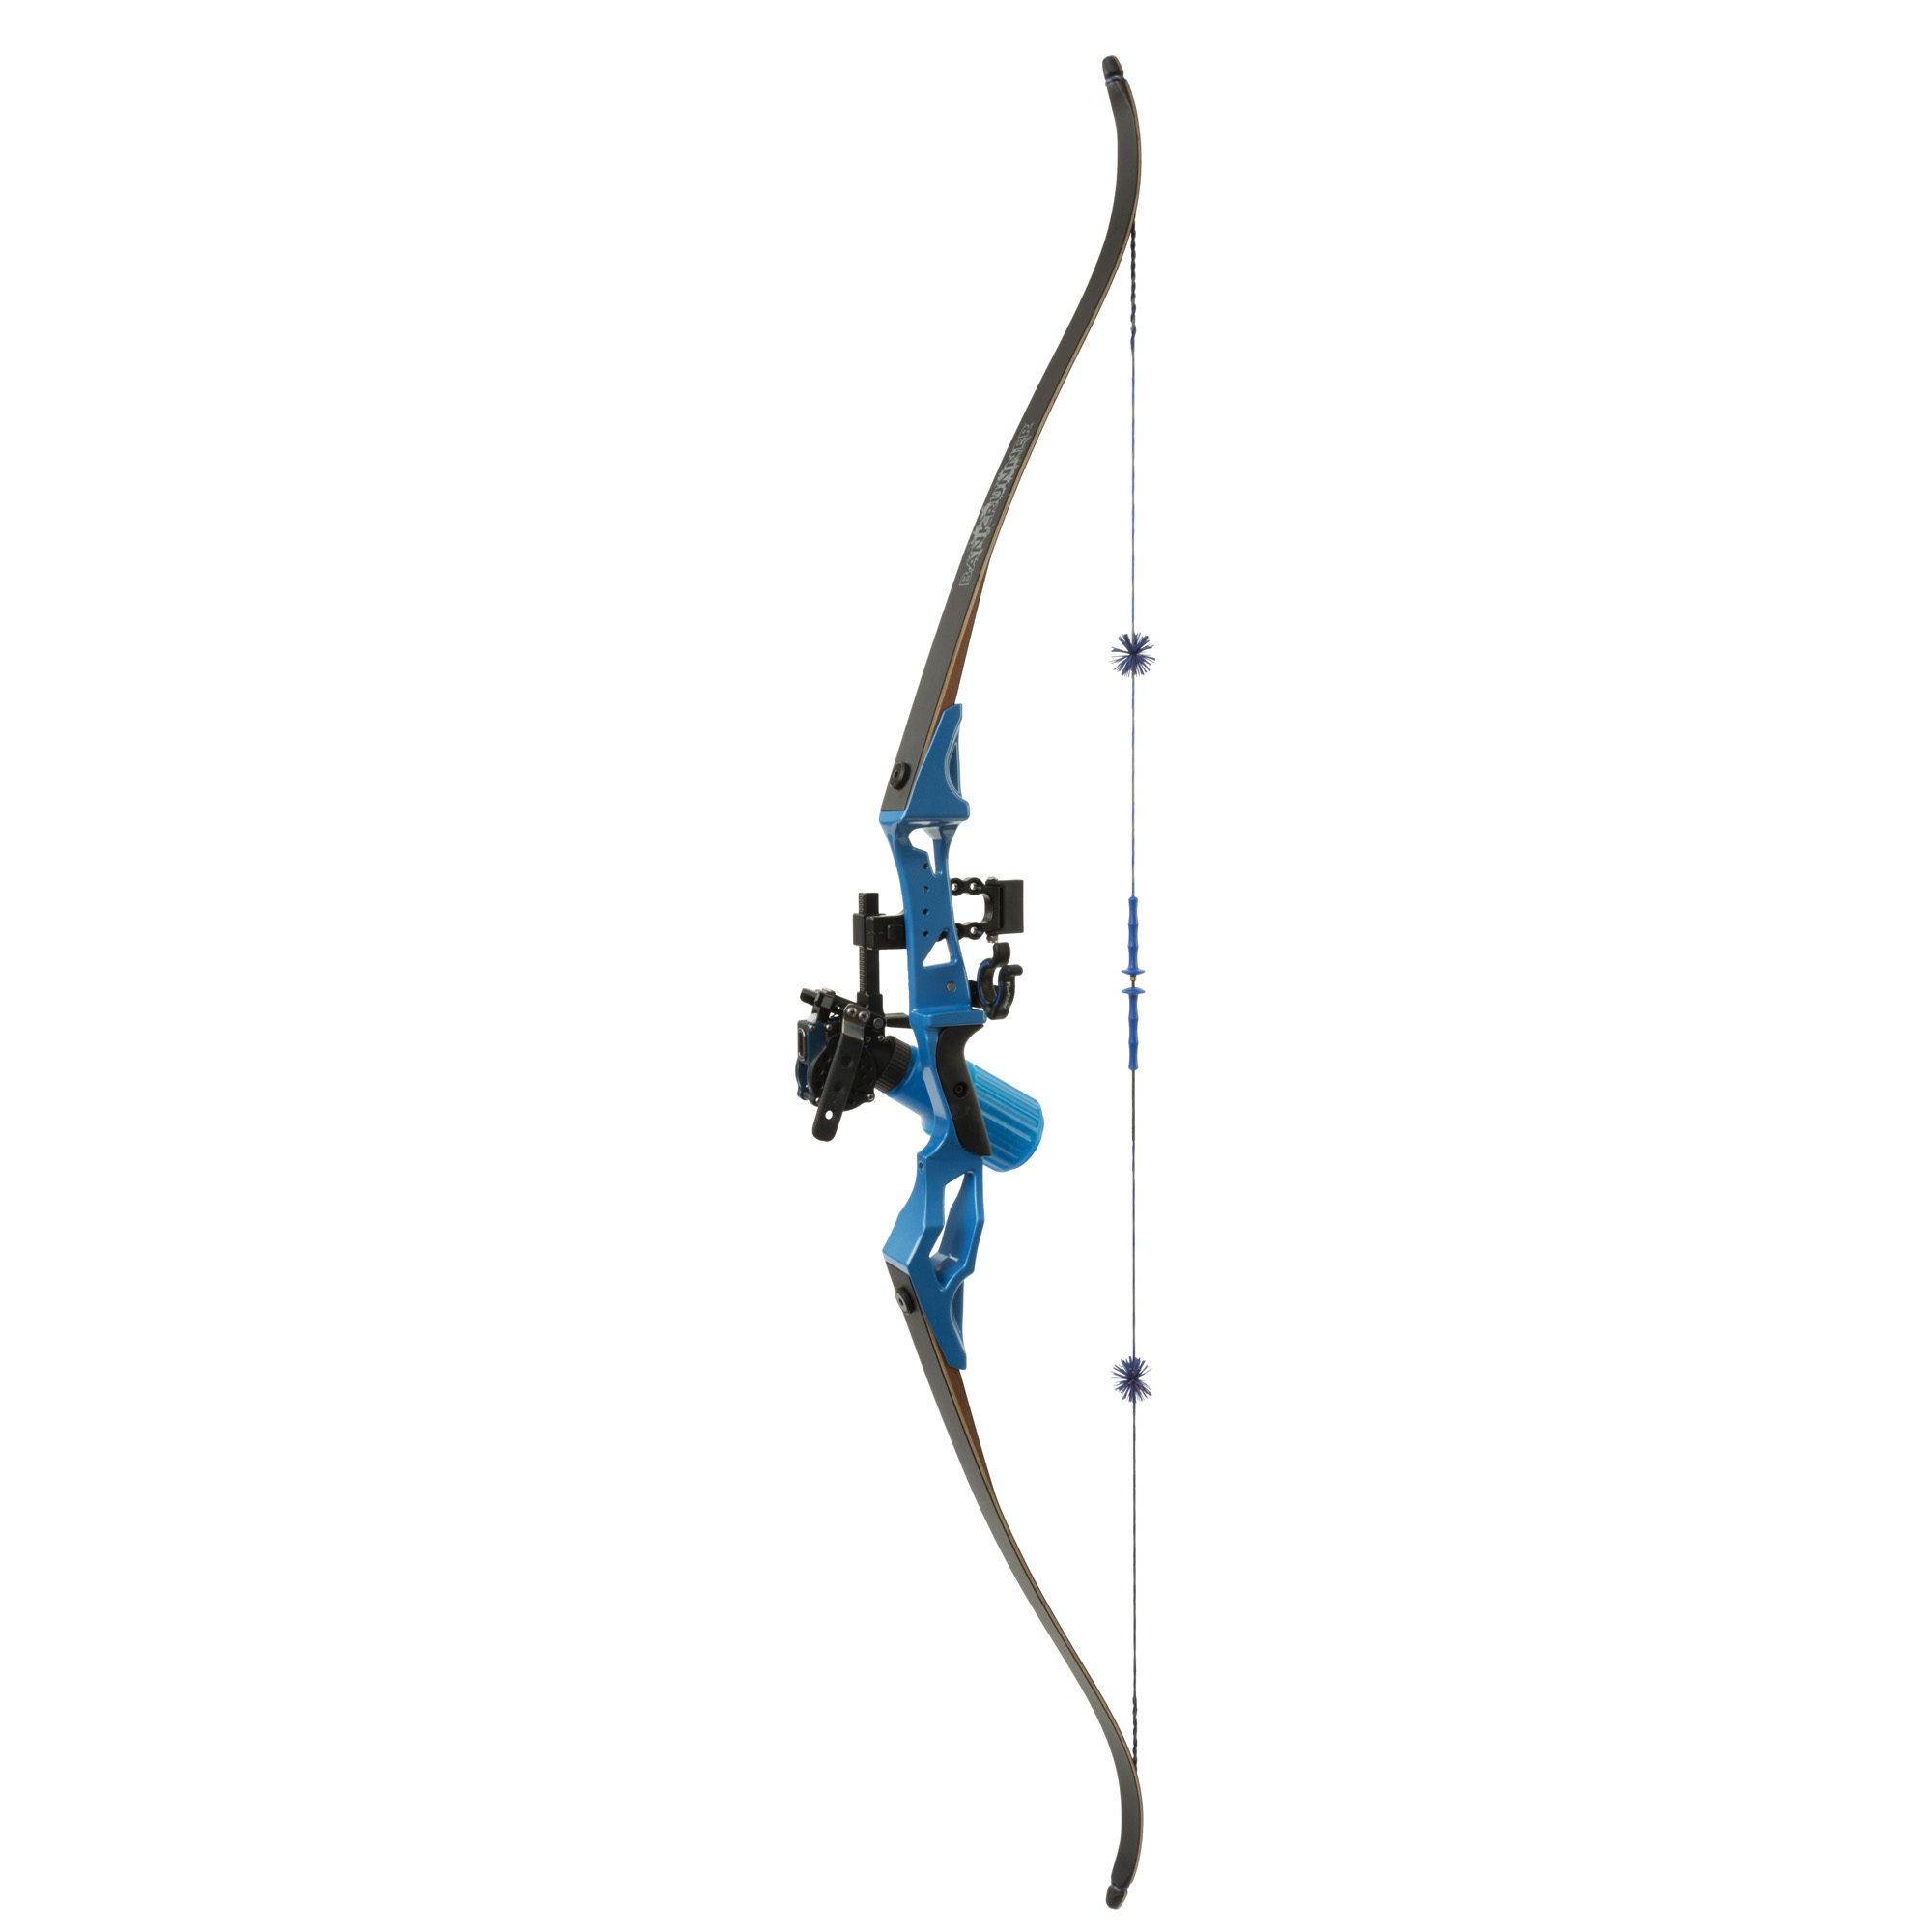 Compound Versus Recurve Bowfishing Bows | Fin-Finder